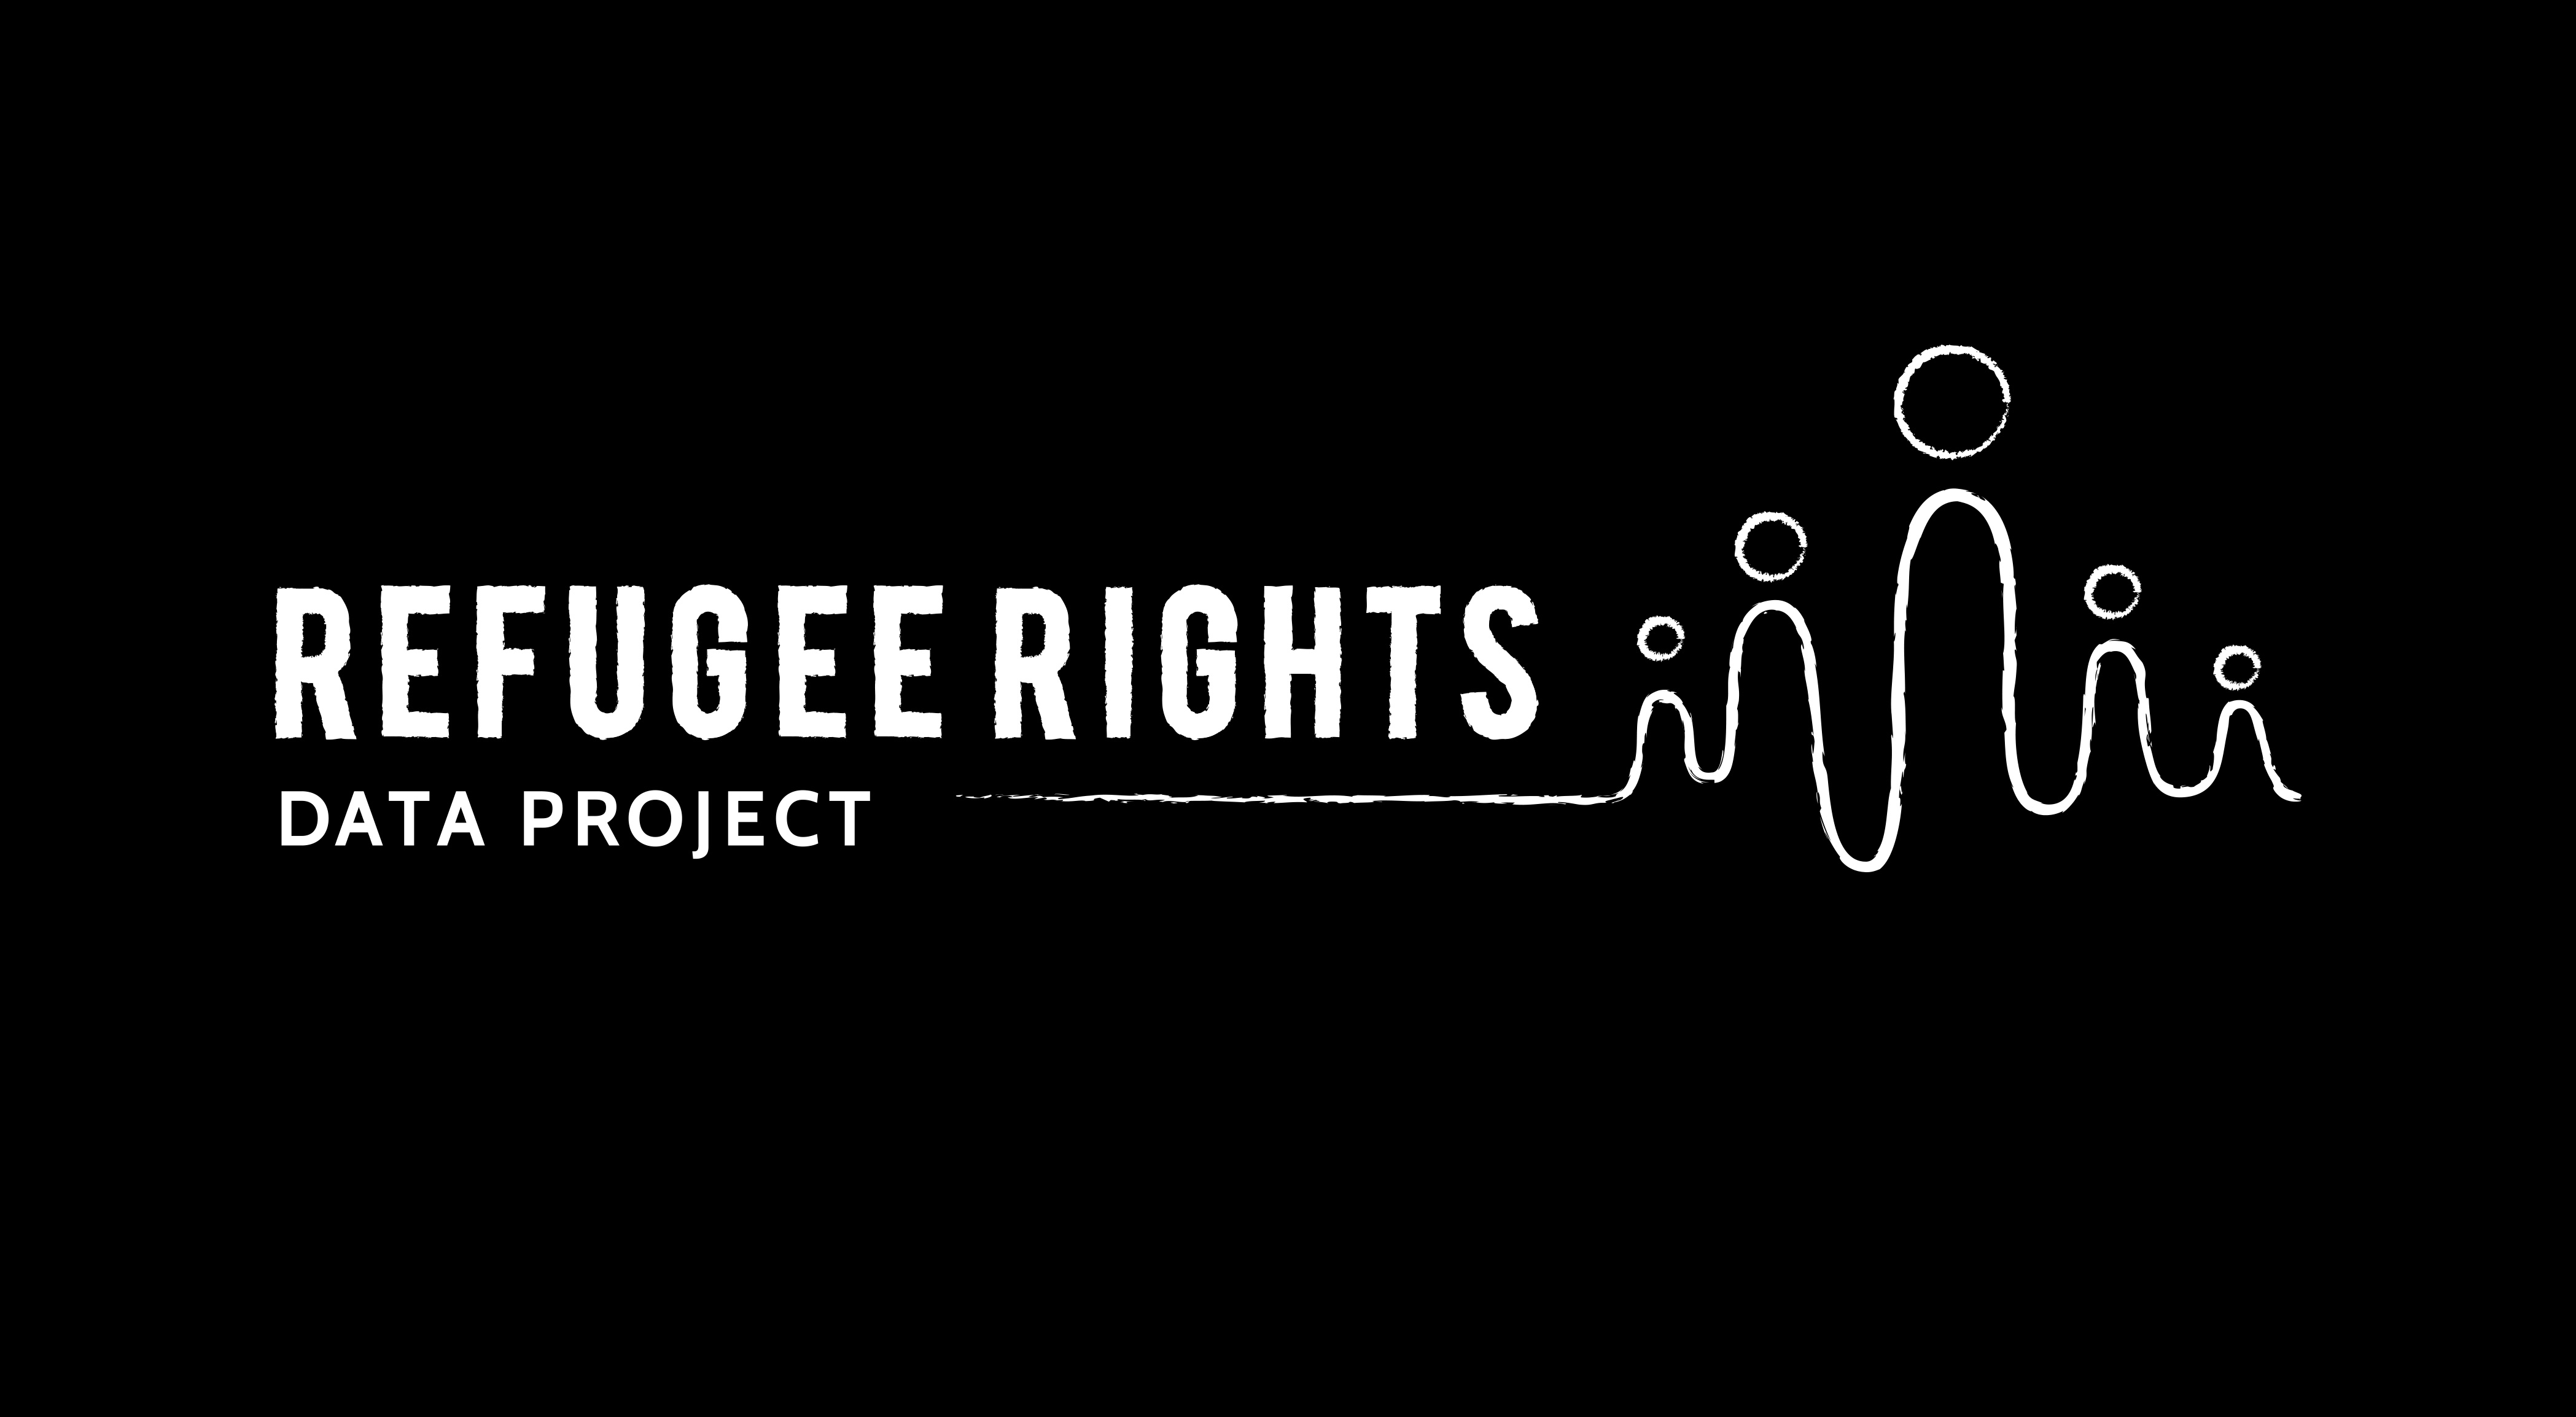 refugee-rights-data-project1